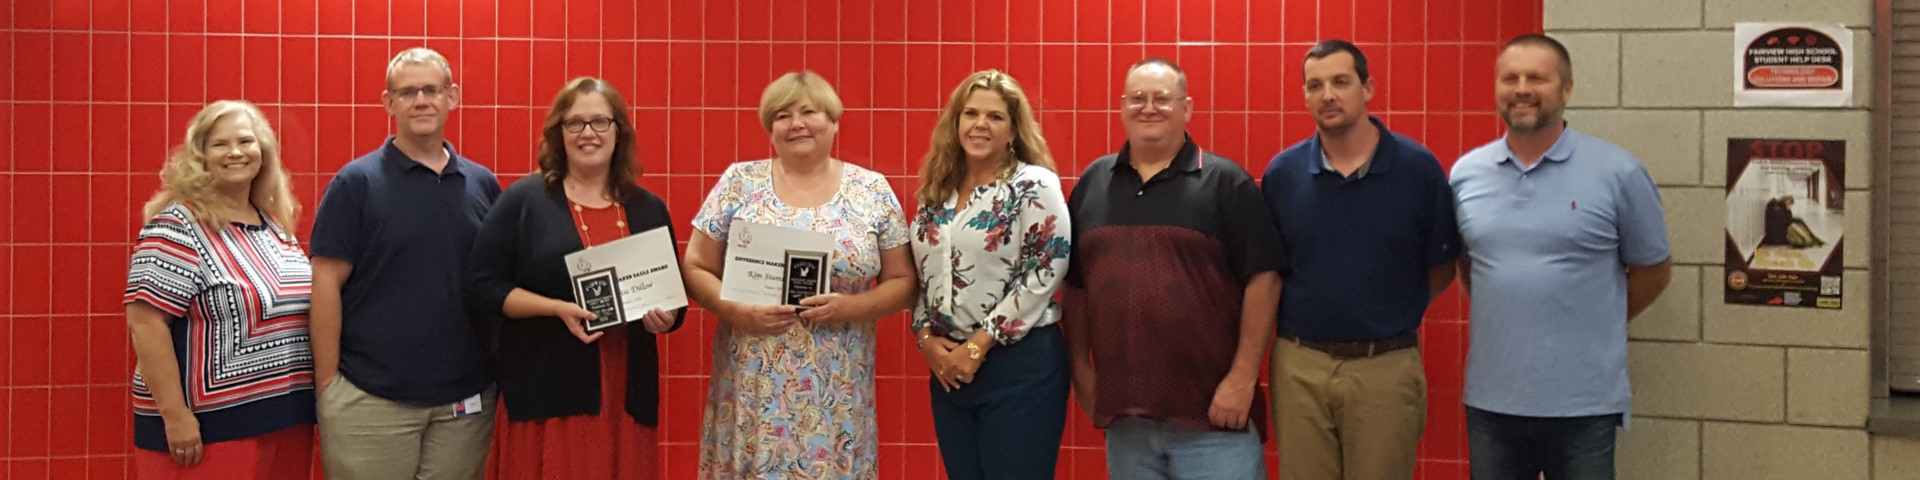 August #DifferenceMaker Award Recipients Denise Dillow and Kim Stambaugh